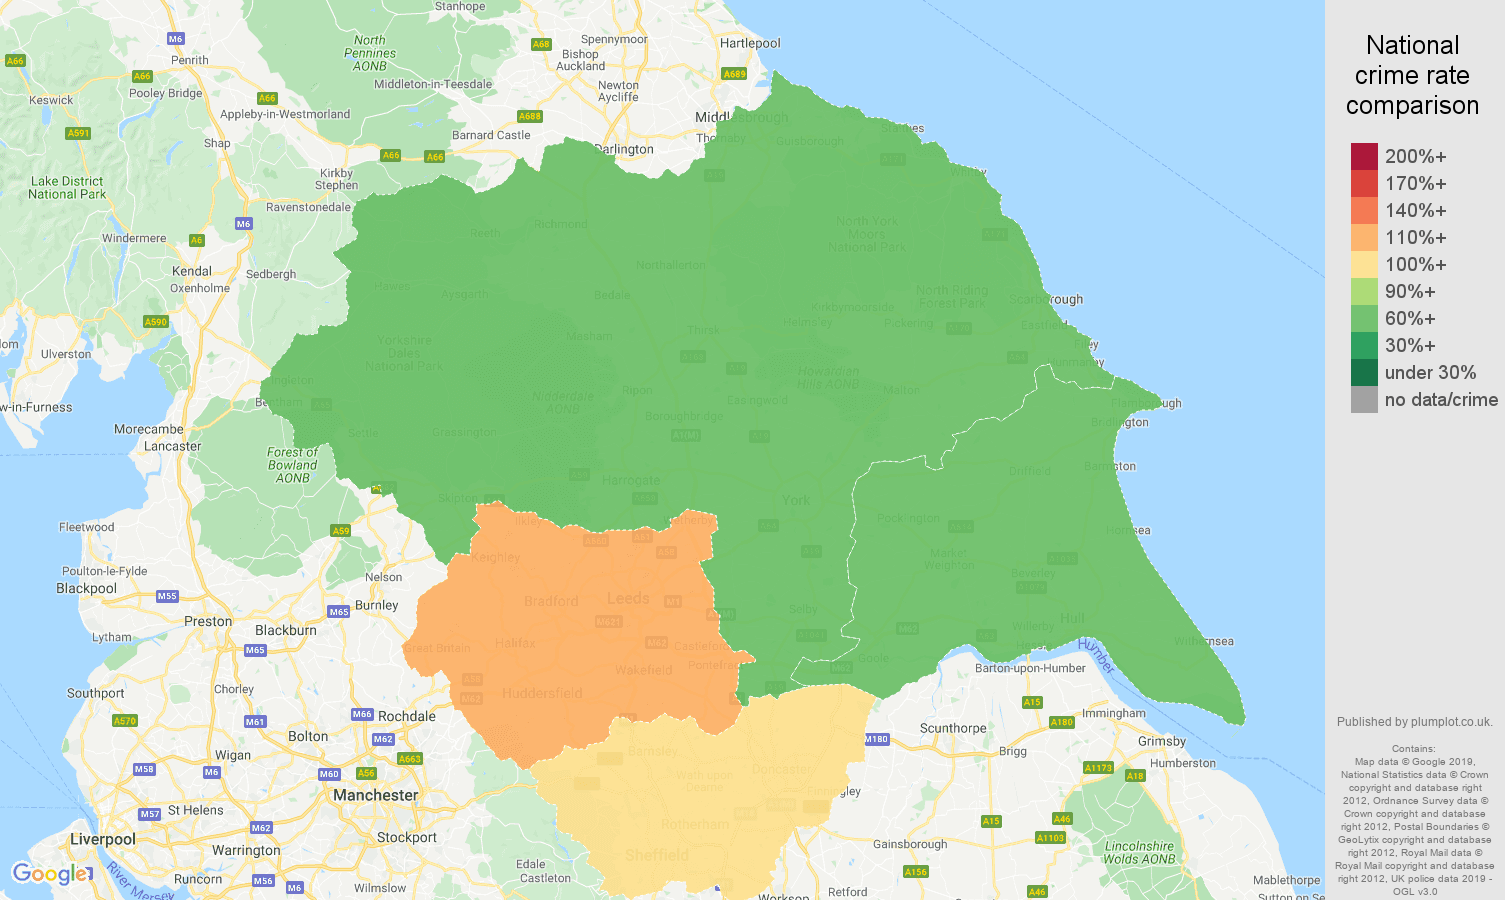 Yorkshire other theft crime rate comparison map